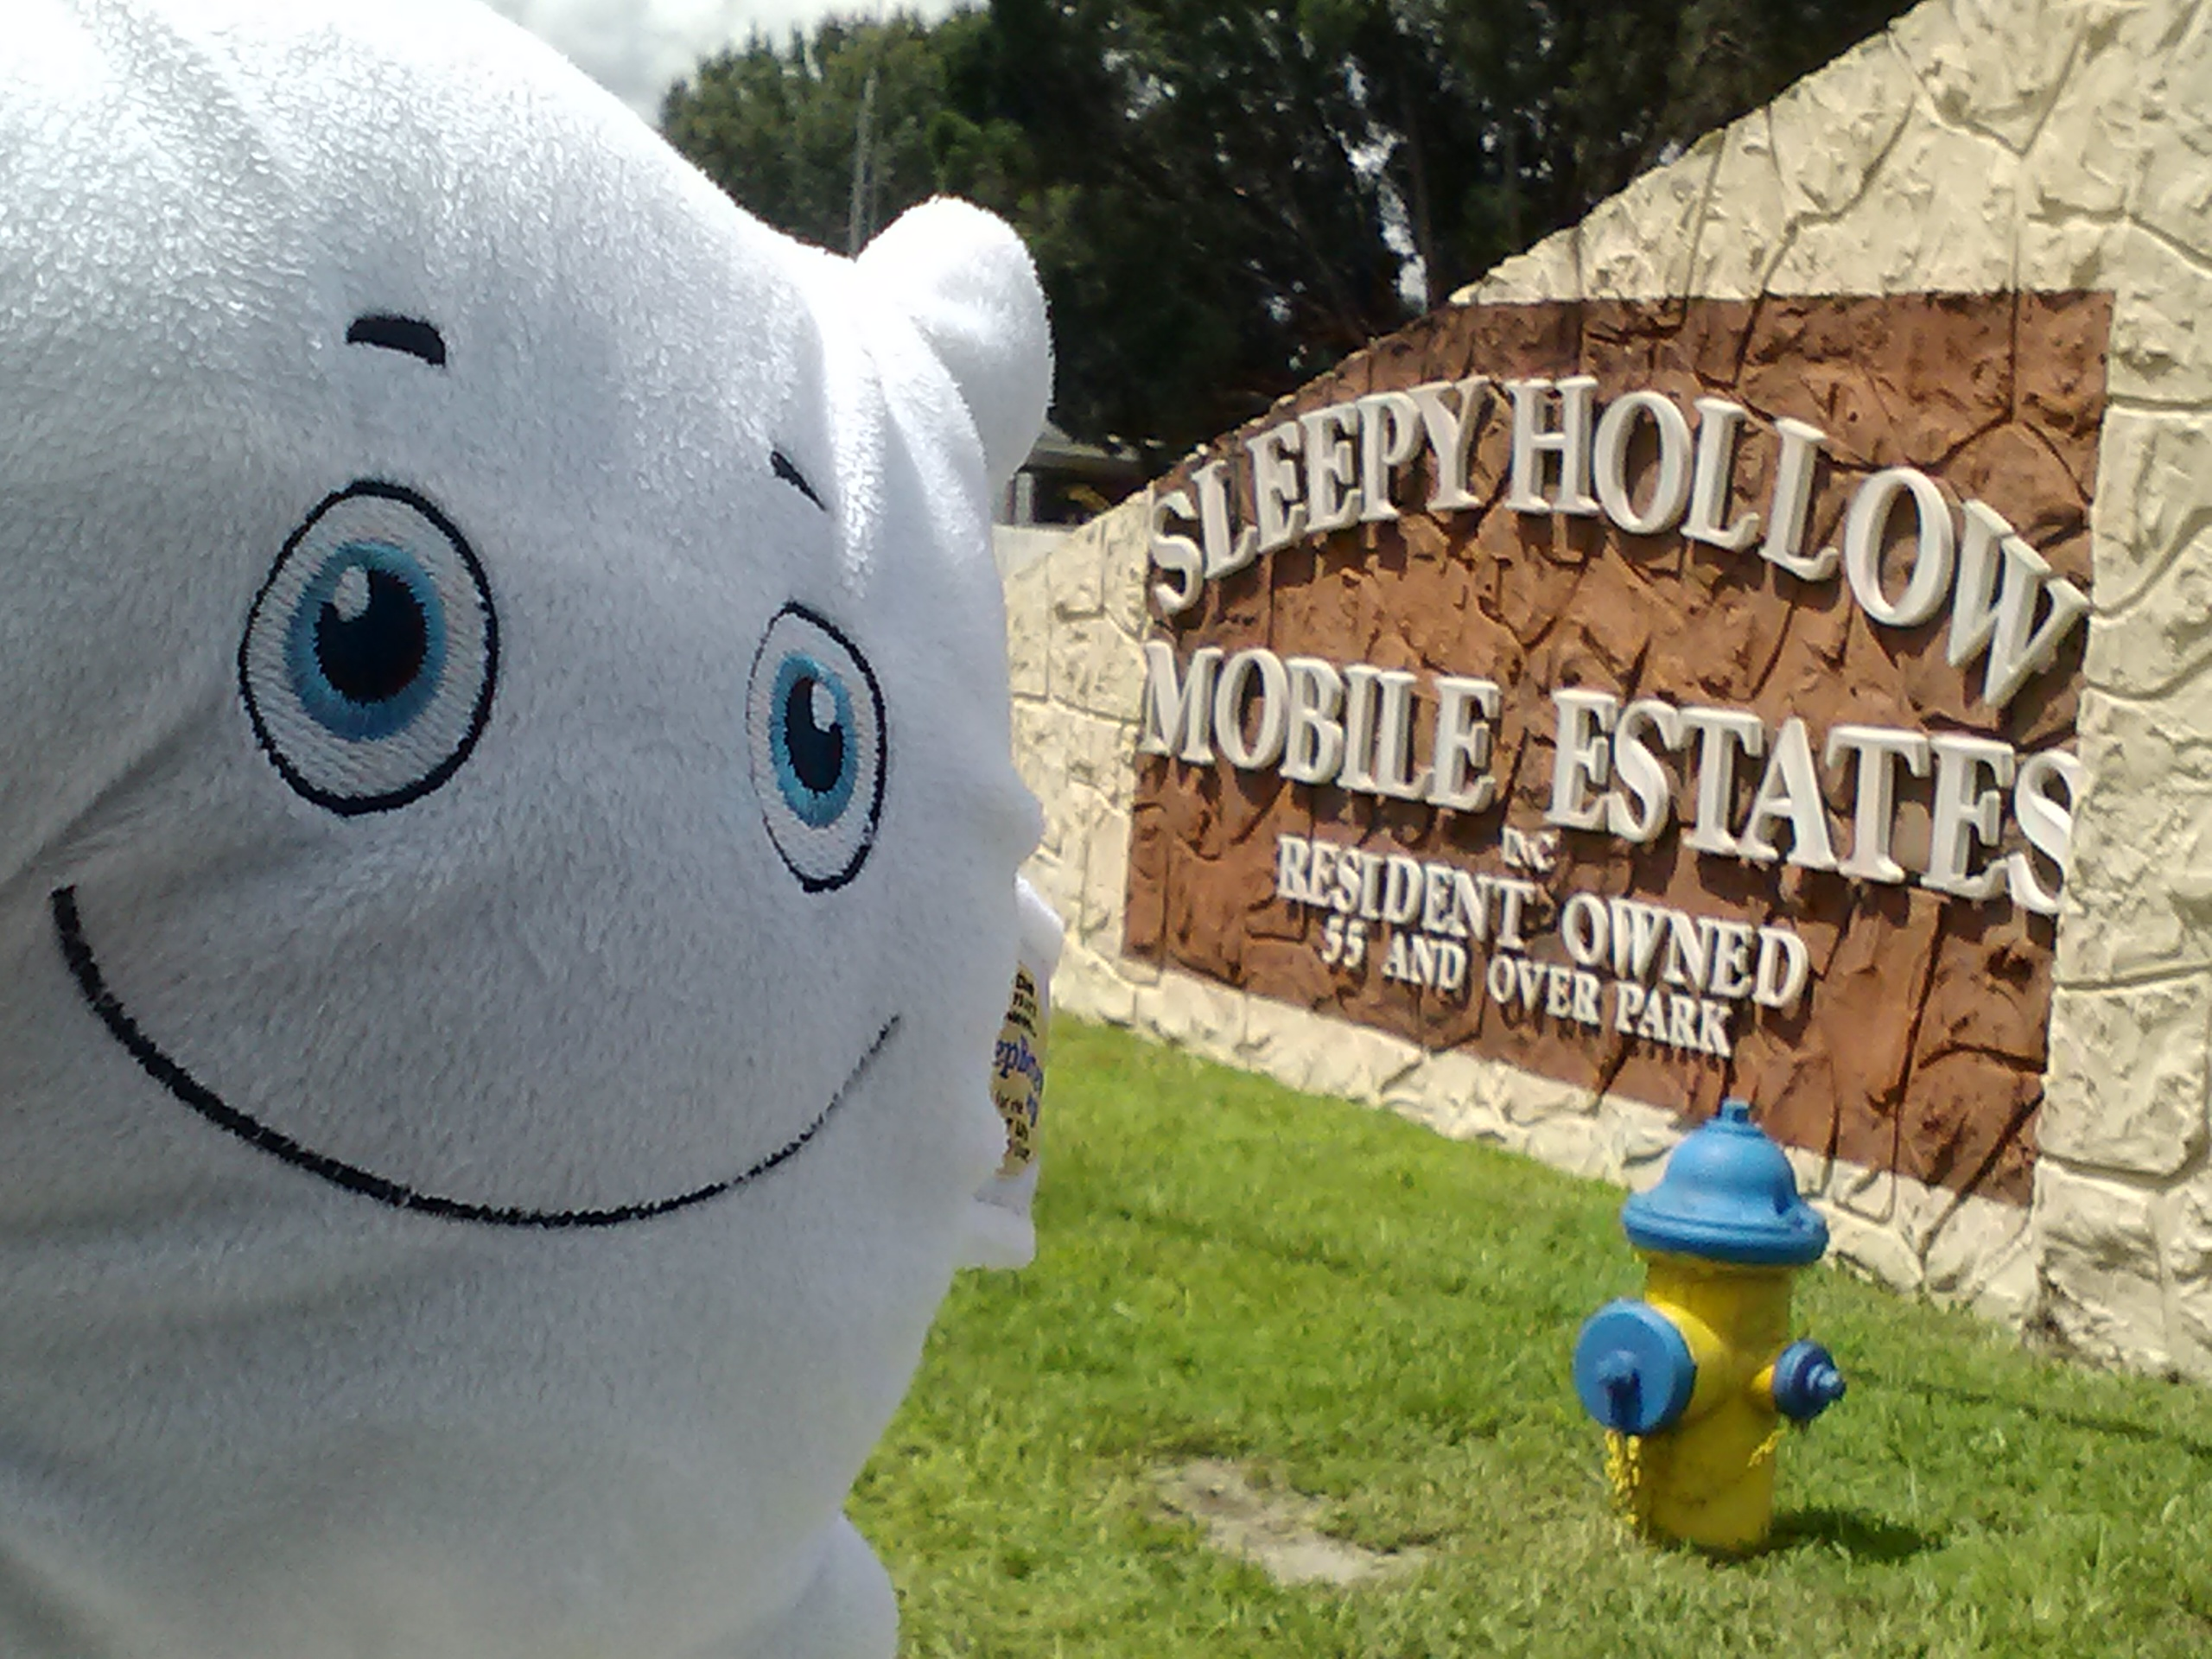 McStuffy O'Fluffigan went in search of sleep-related towns. He found this...